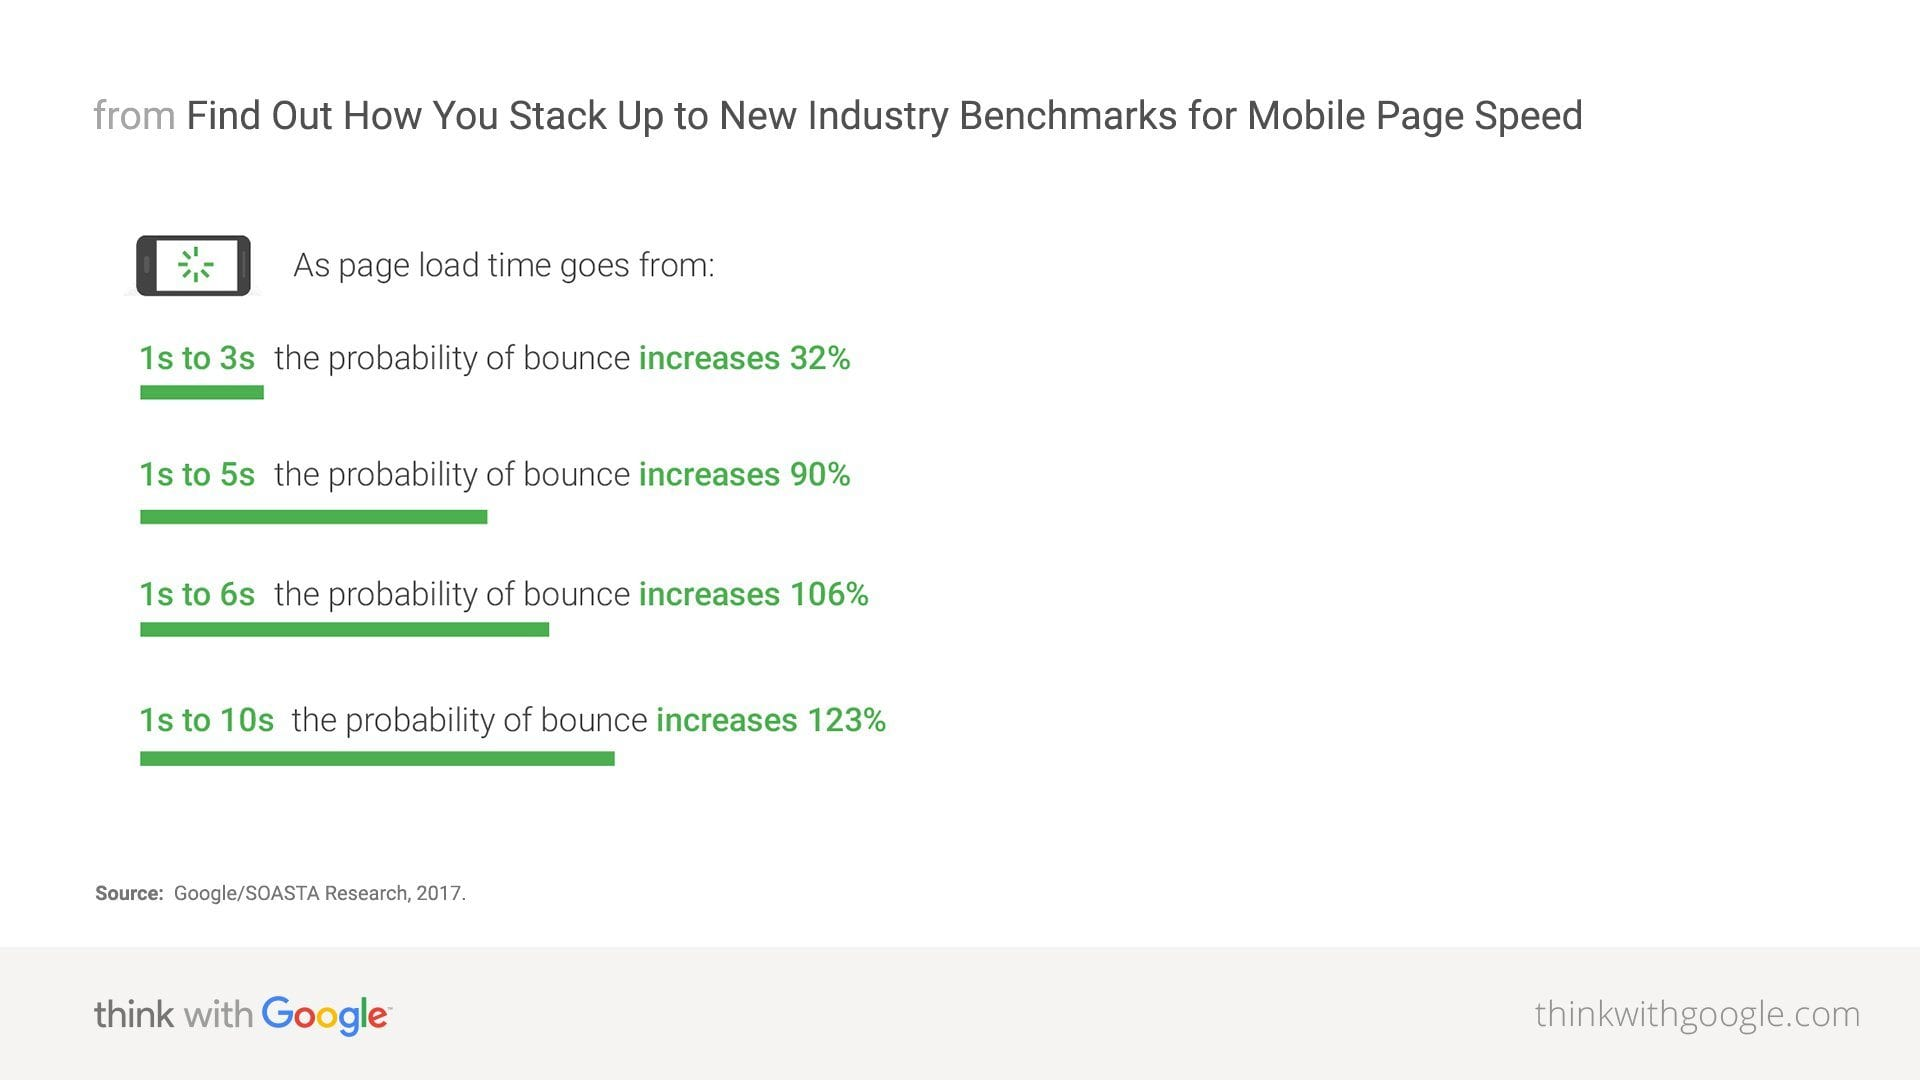 mobile-page-speed-new-industry-benchmarks